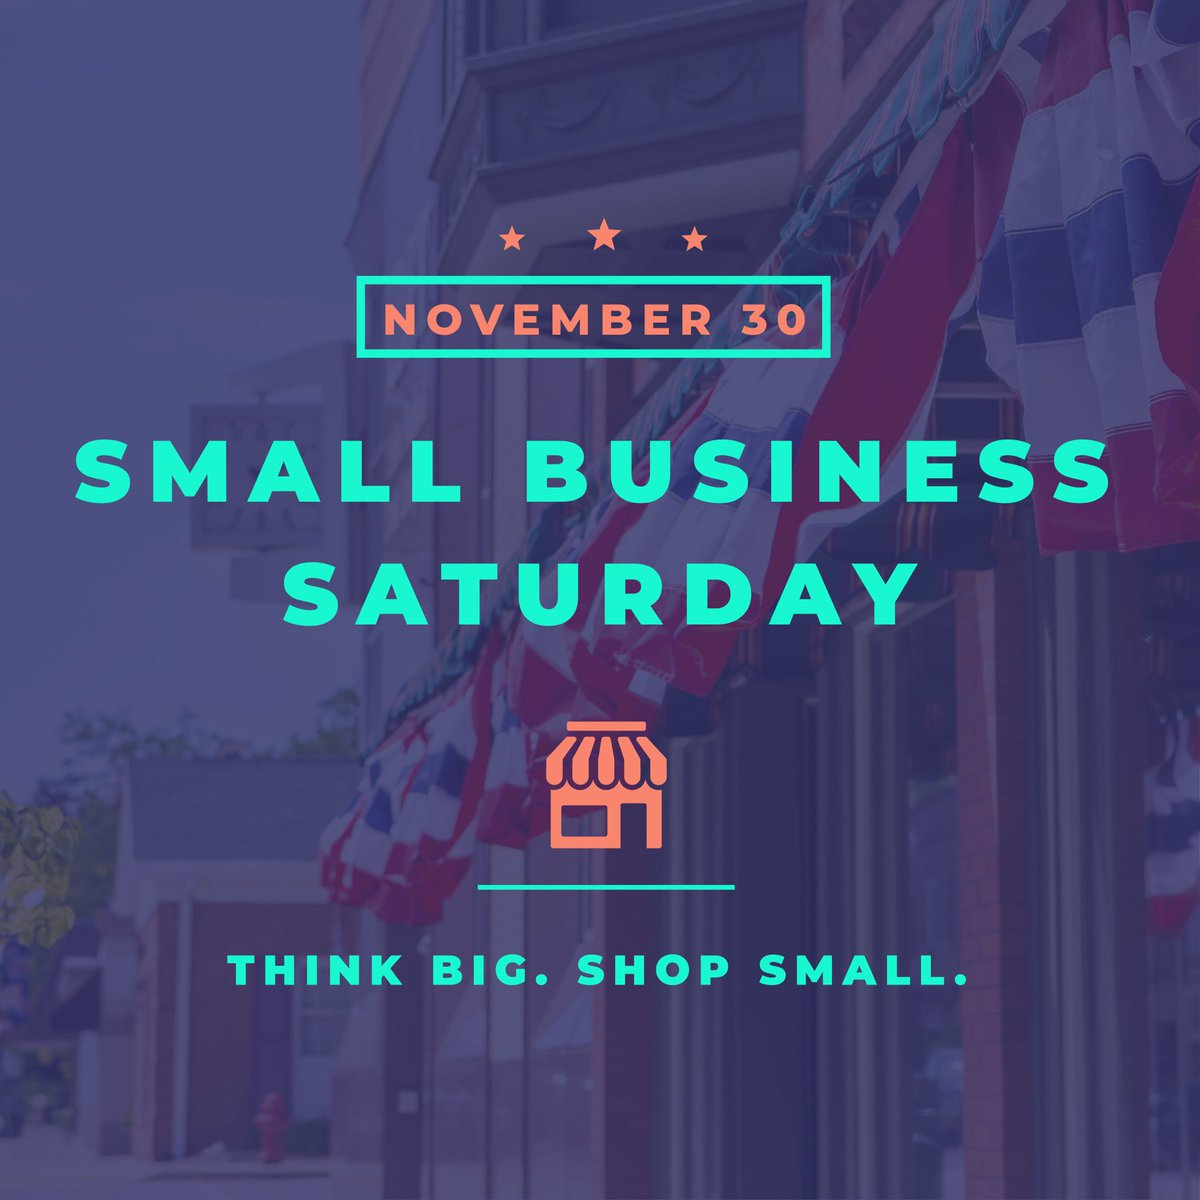 Be sure to support your local small businesses when shopping great deals on this #SmallBusinessSaturday!